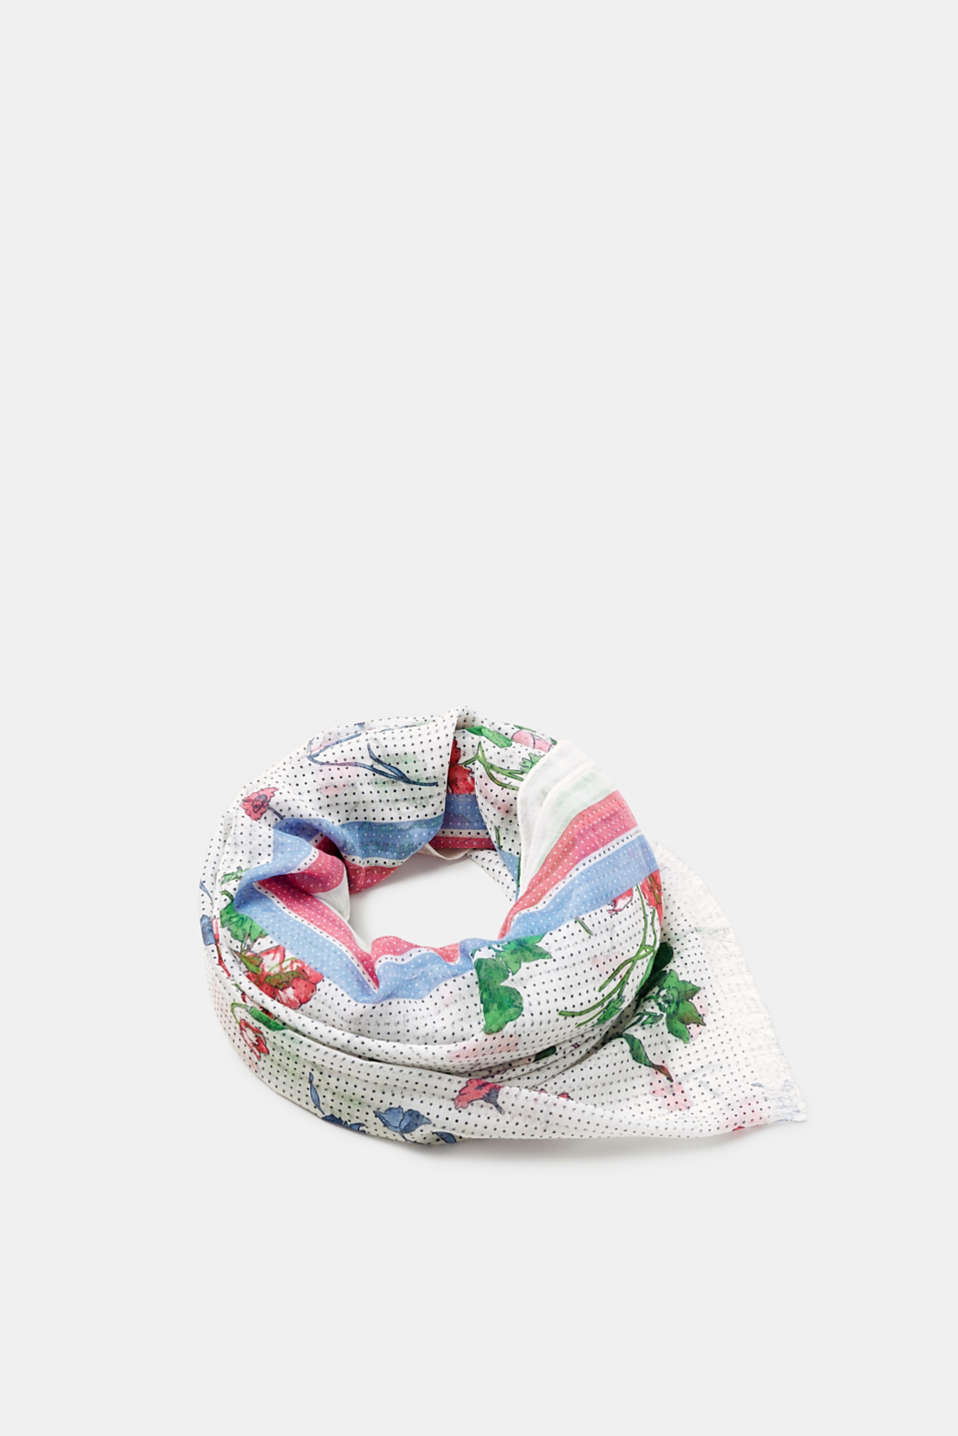 This spring-ready scarf can be wrapped and draped however you please with its cheery floral and polka dot print.